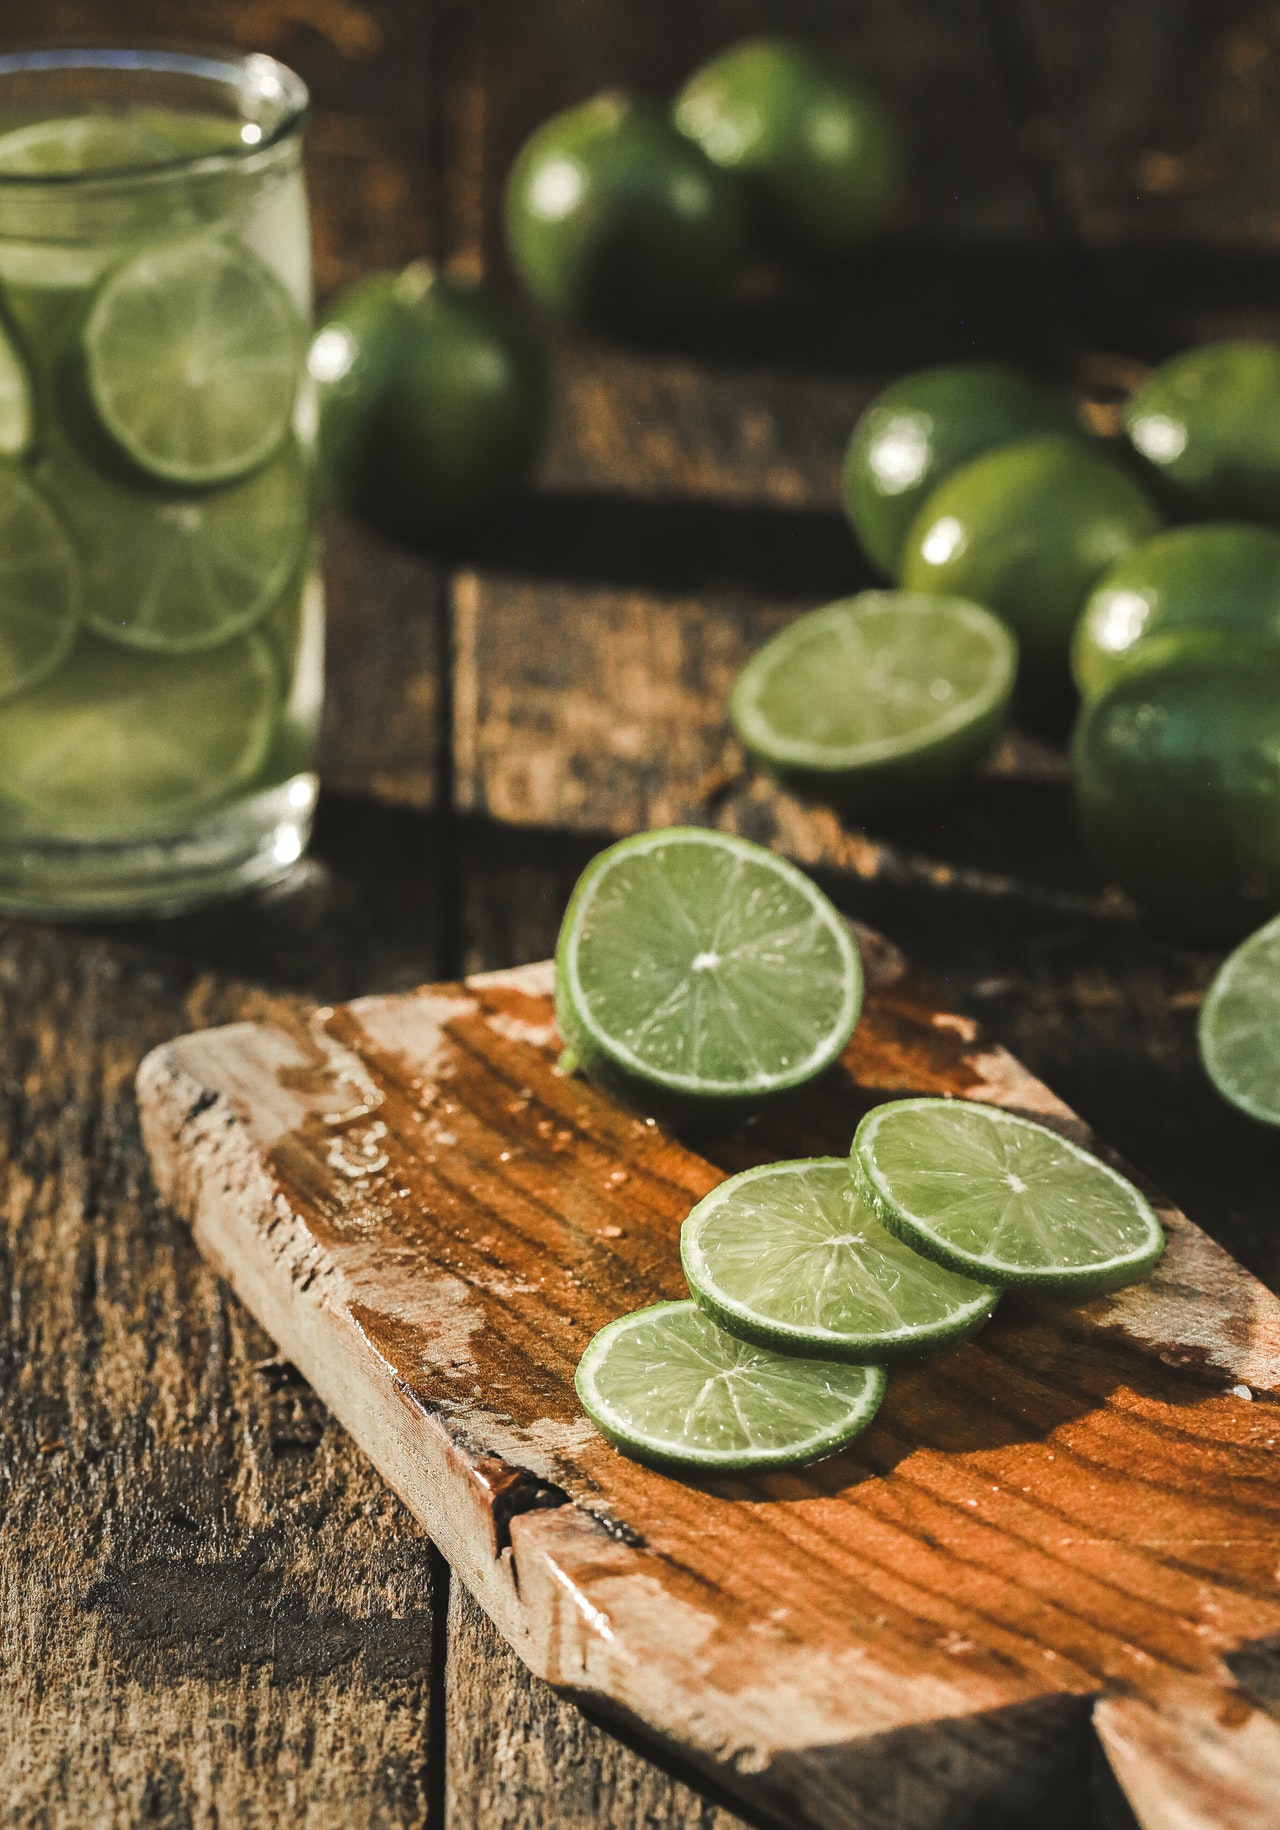 Does lime juice go bad? How long can it last?